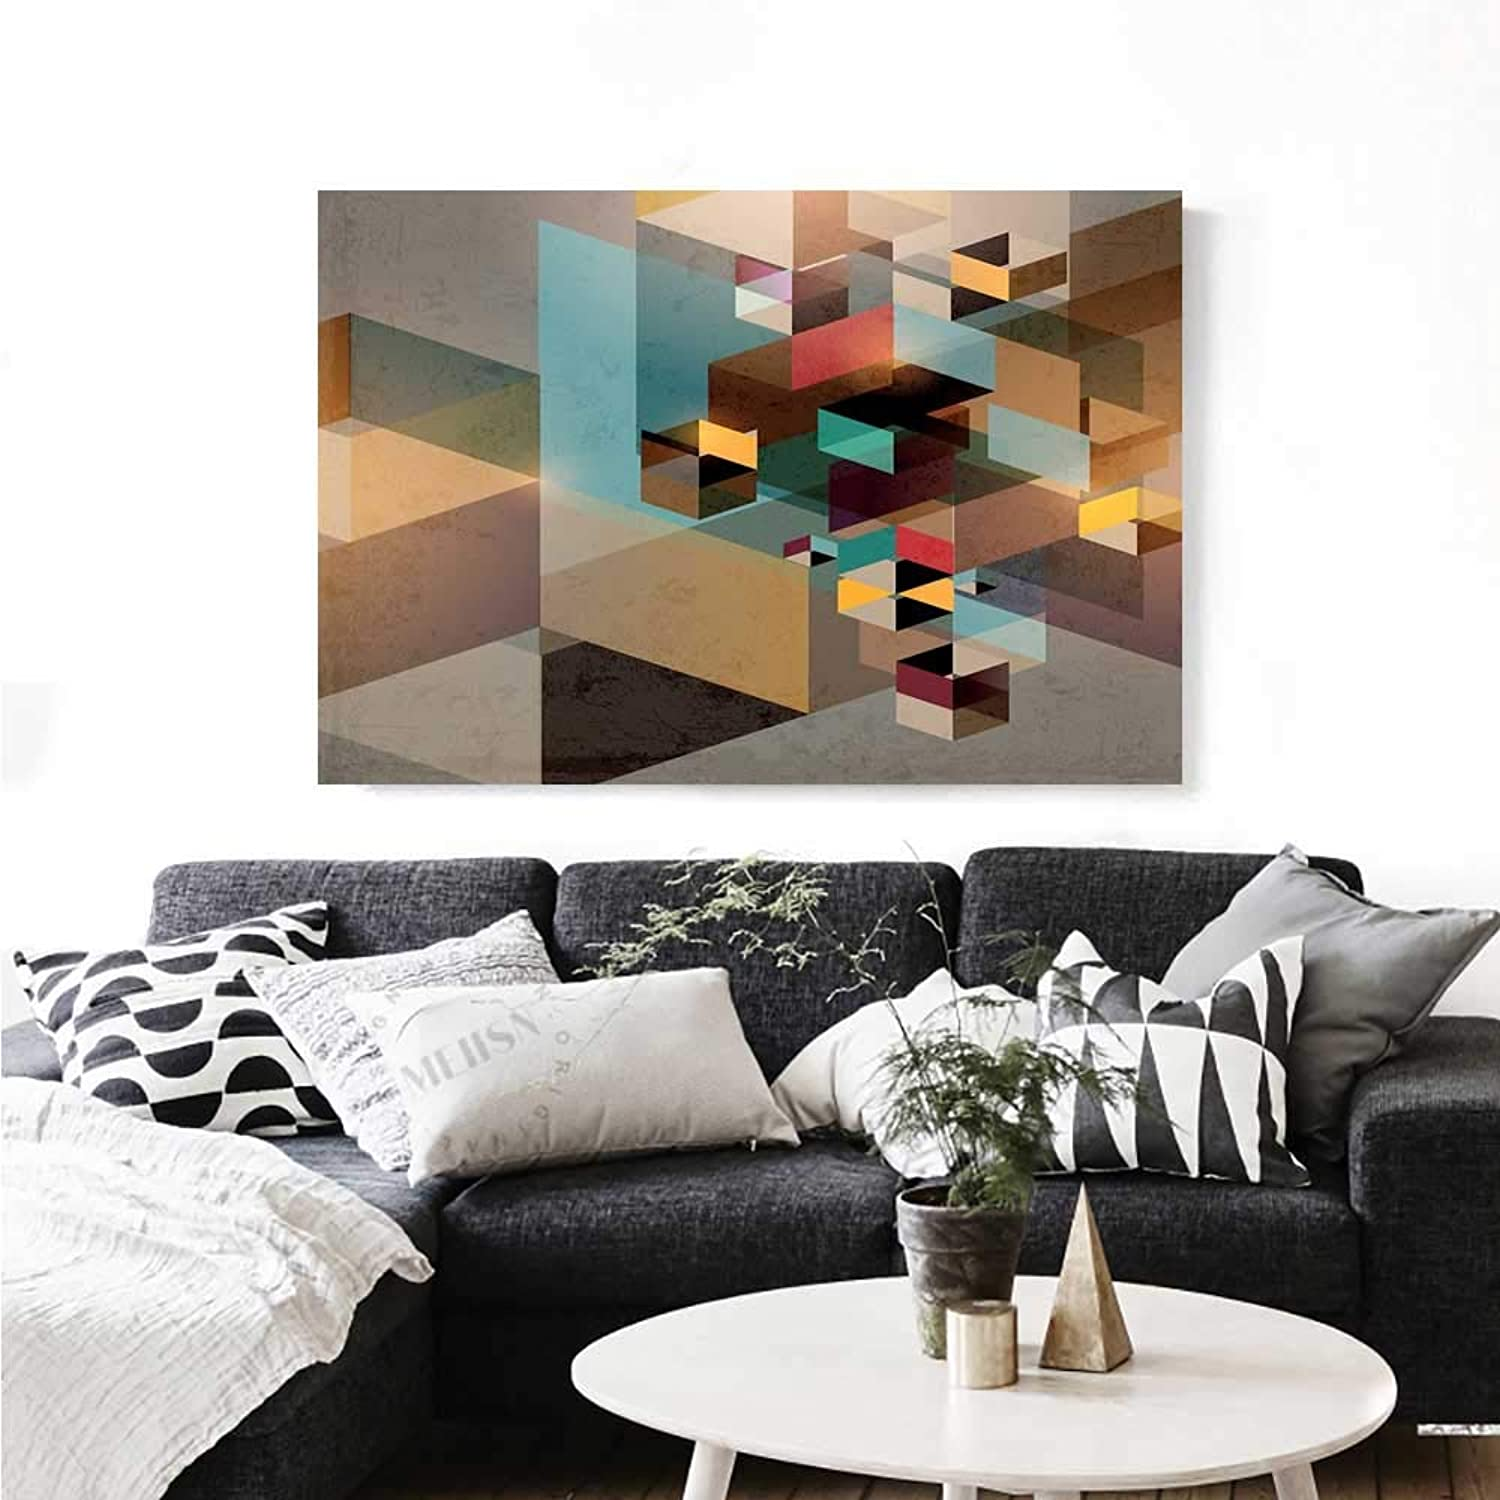 Warm Family Abstract Canvas Print Wall Art colorful Structure in Pieces Modern Dynamic Graphic Design Industrial Artistic Art Stickers 36 x32  Multicolor